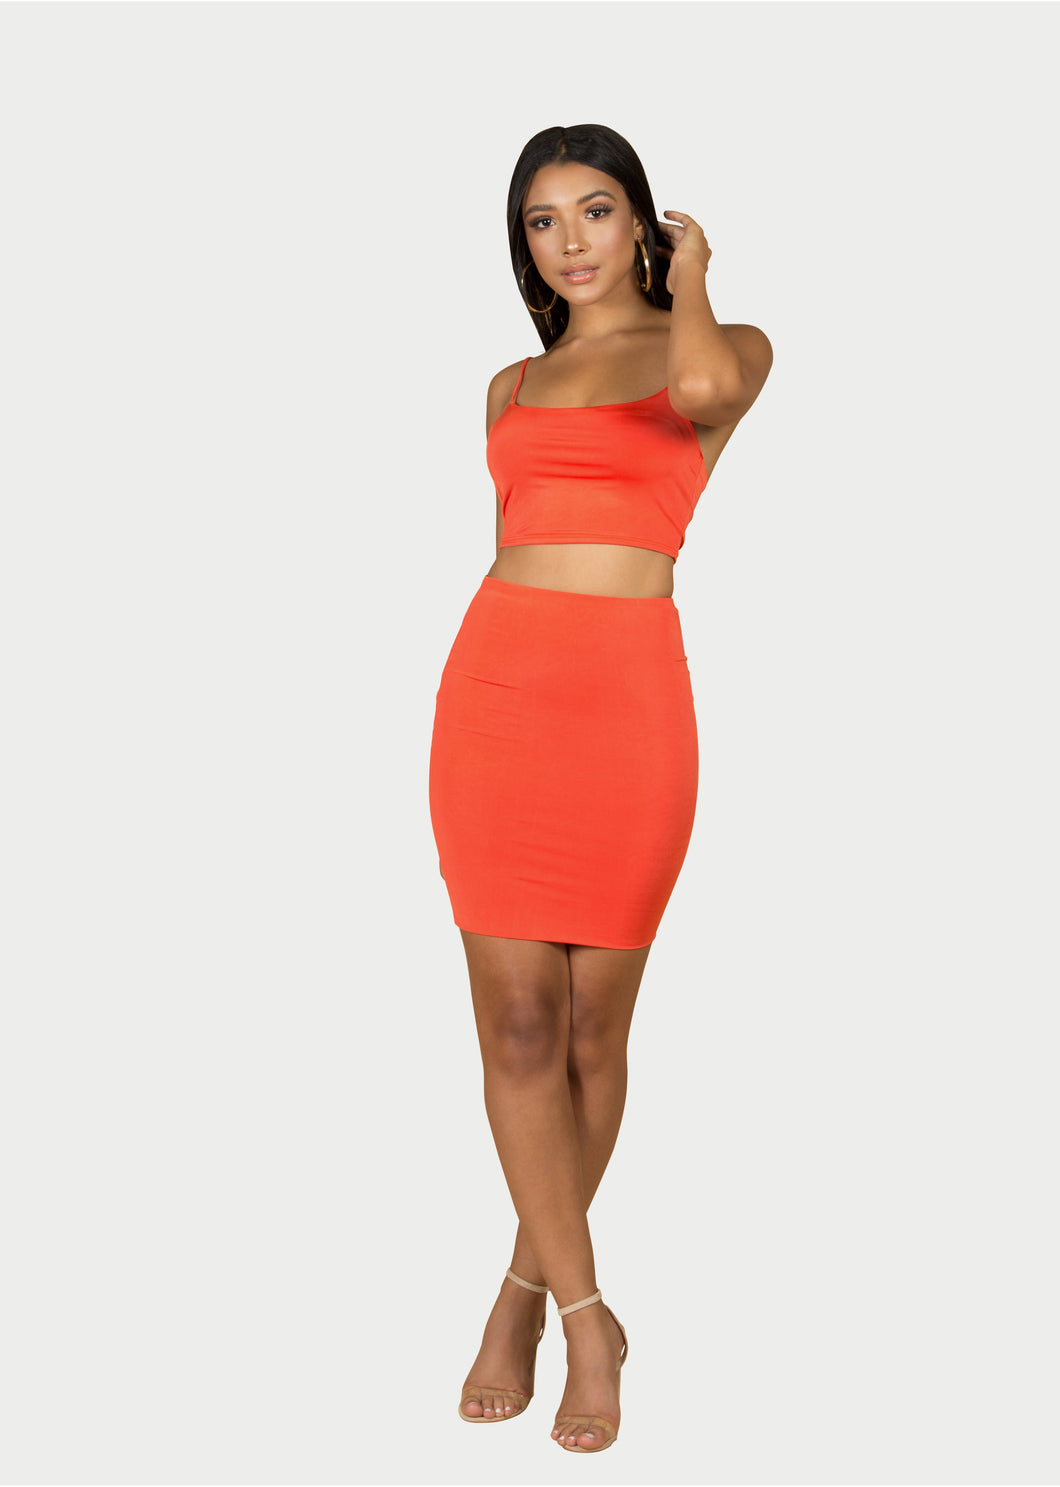 orange skirt and top set